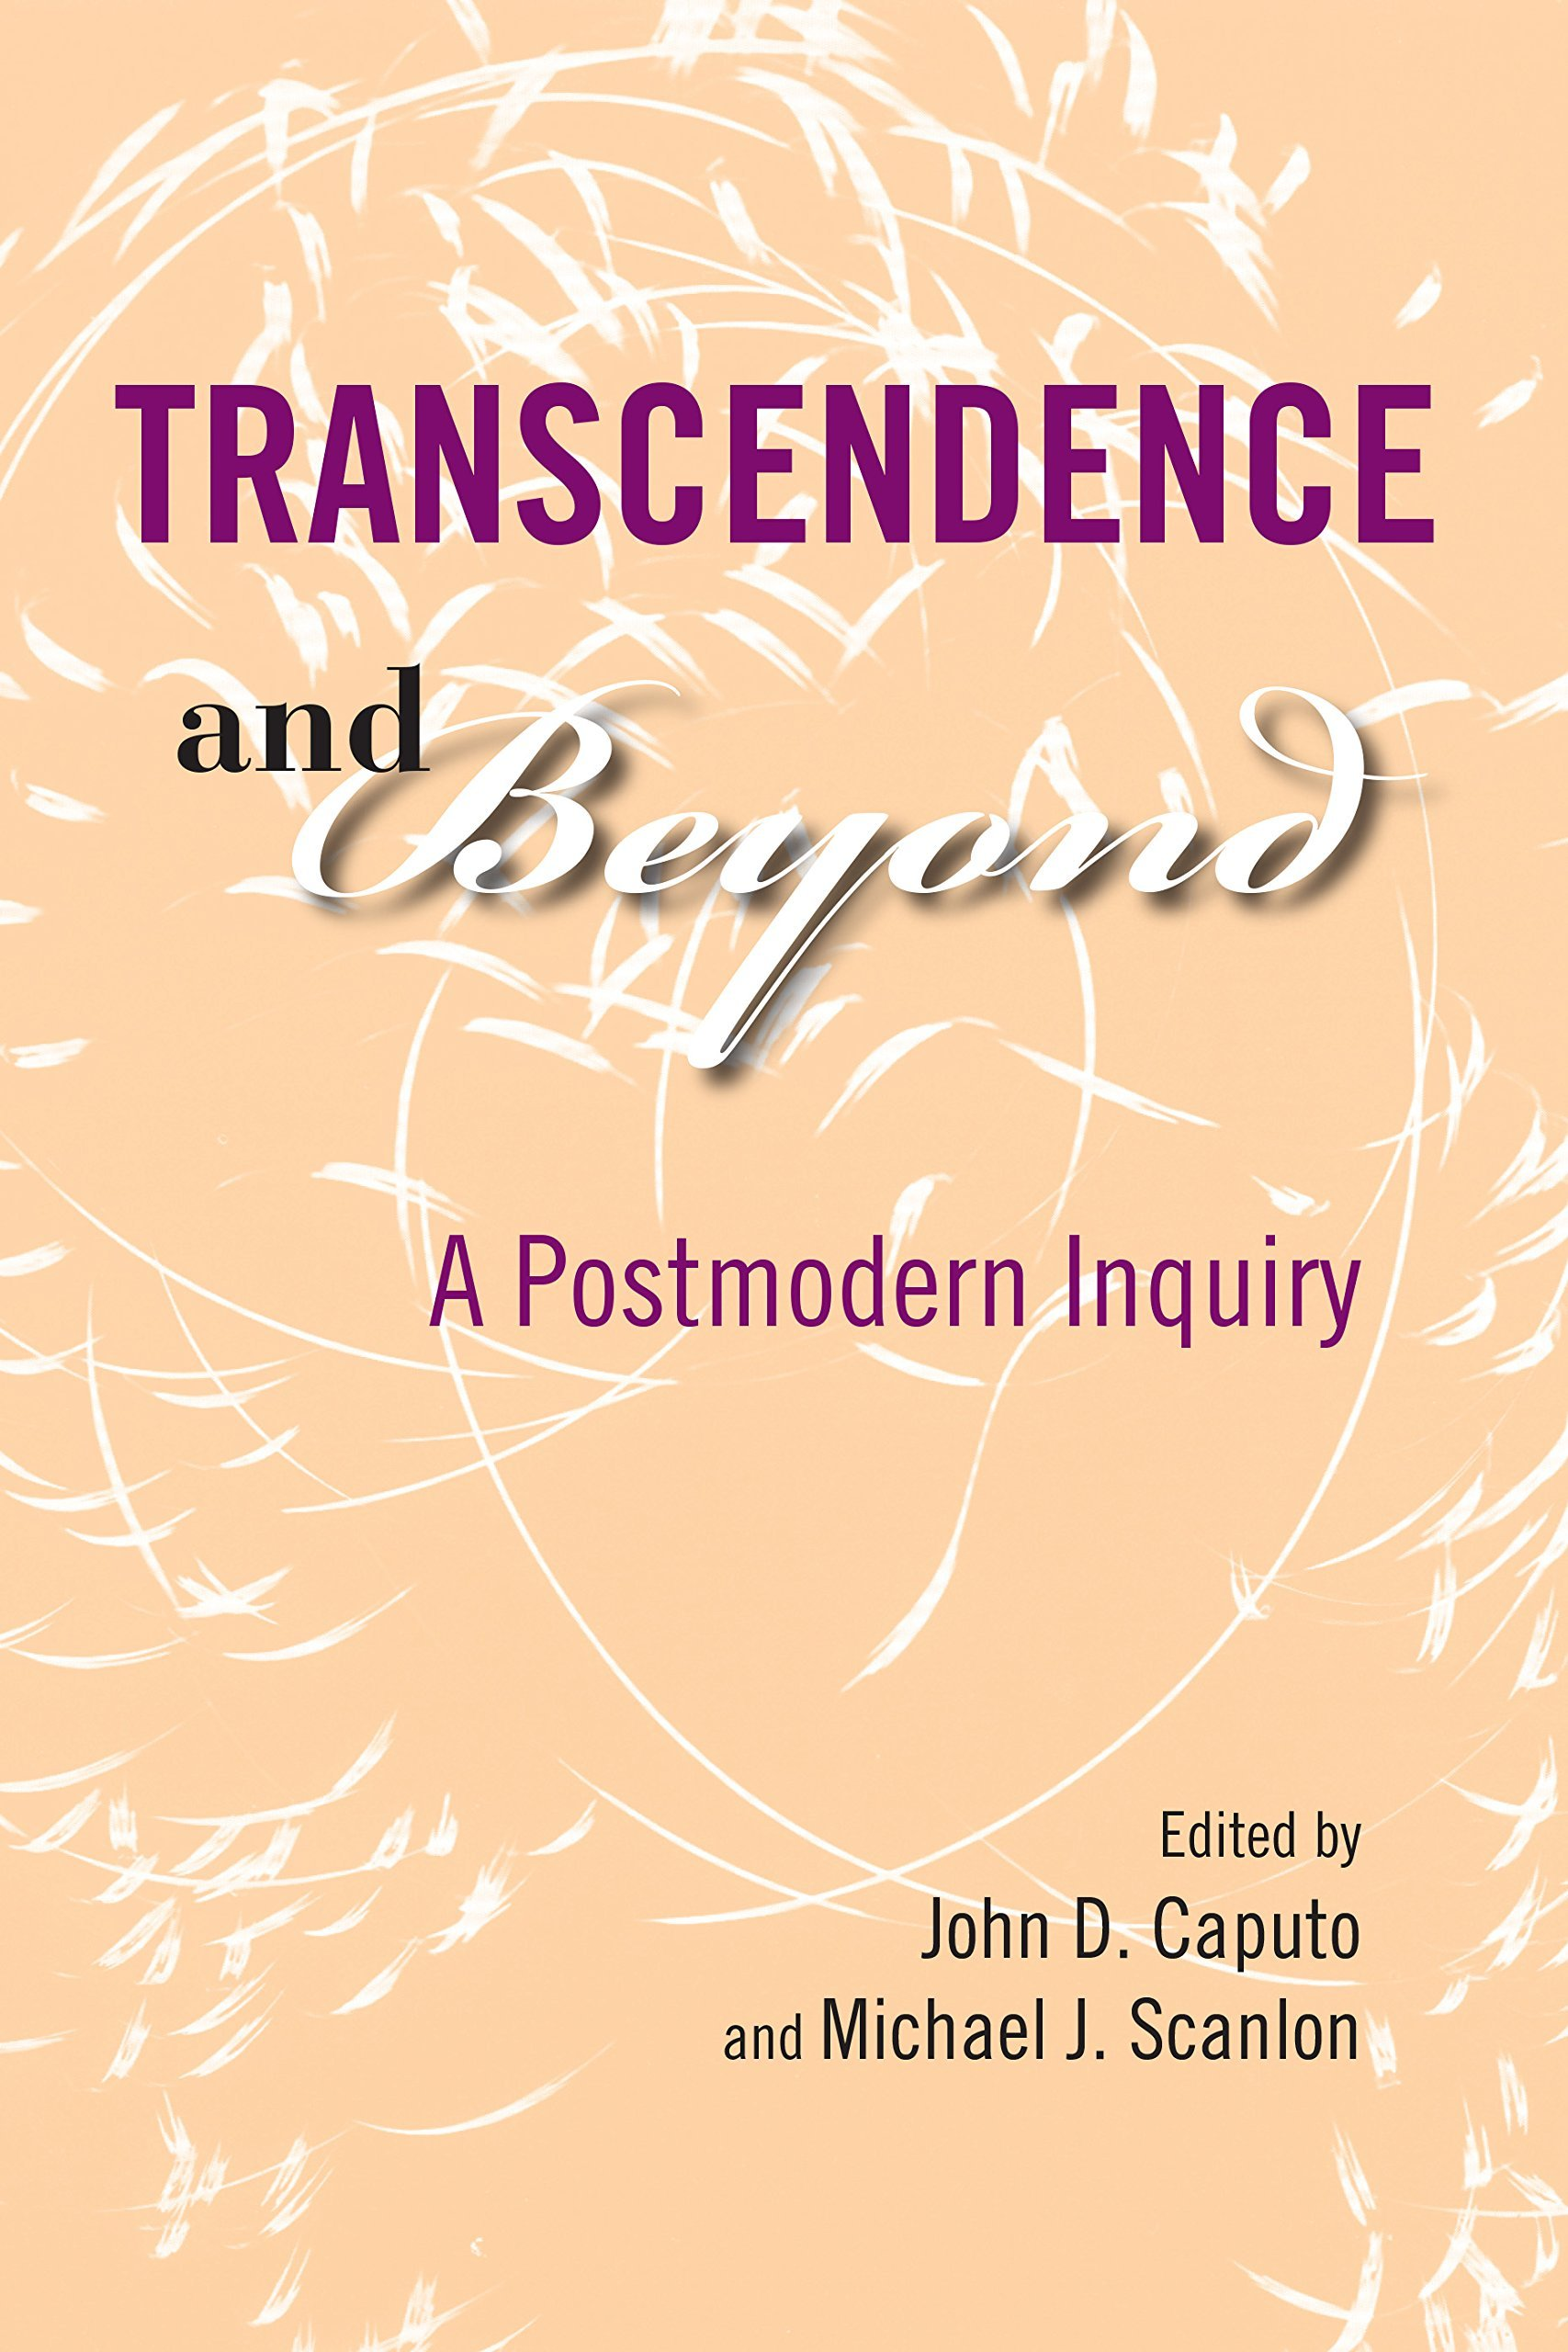 Transcendence and Beyond: A Postmodern Inquiry